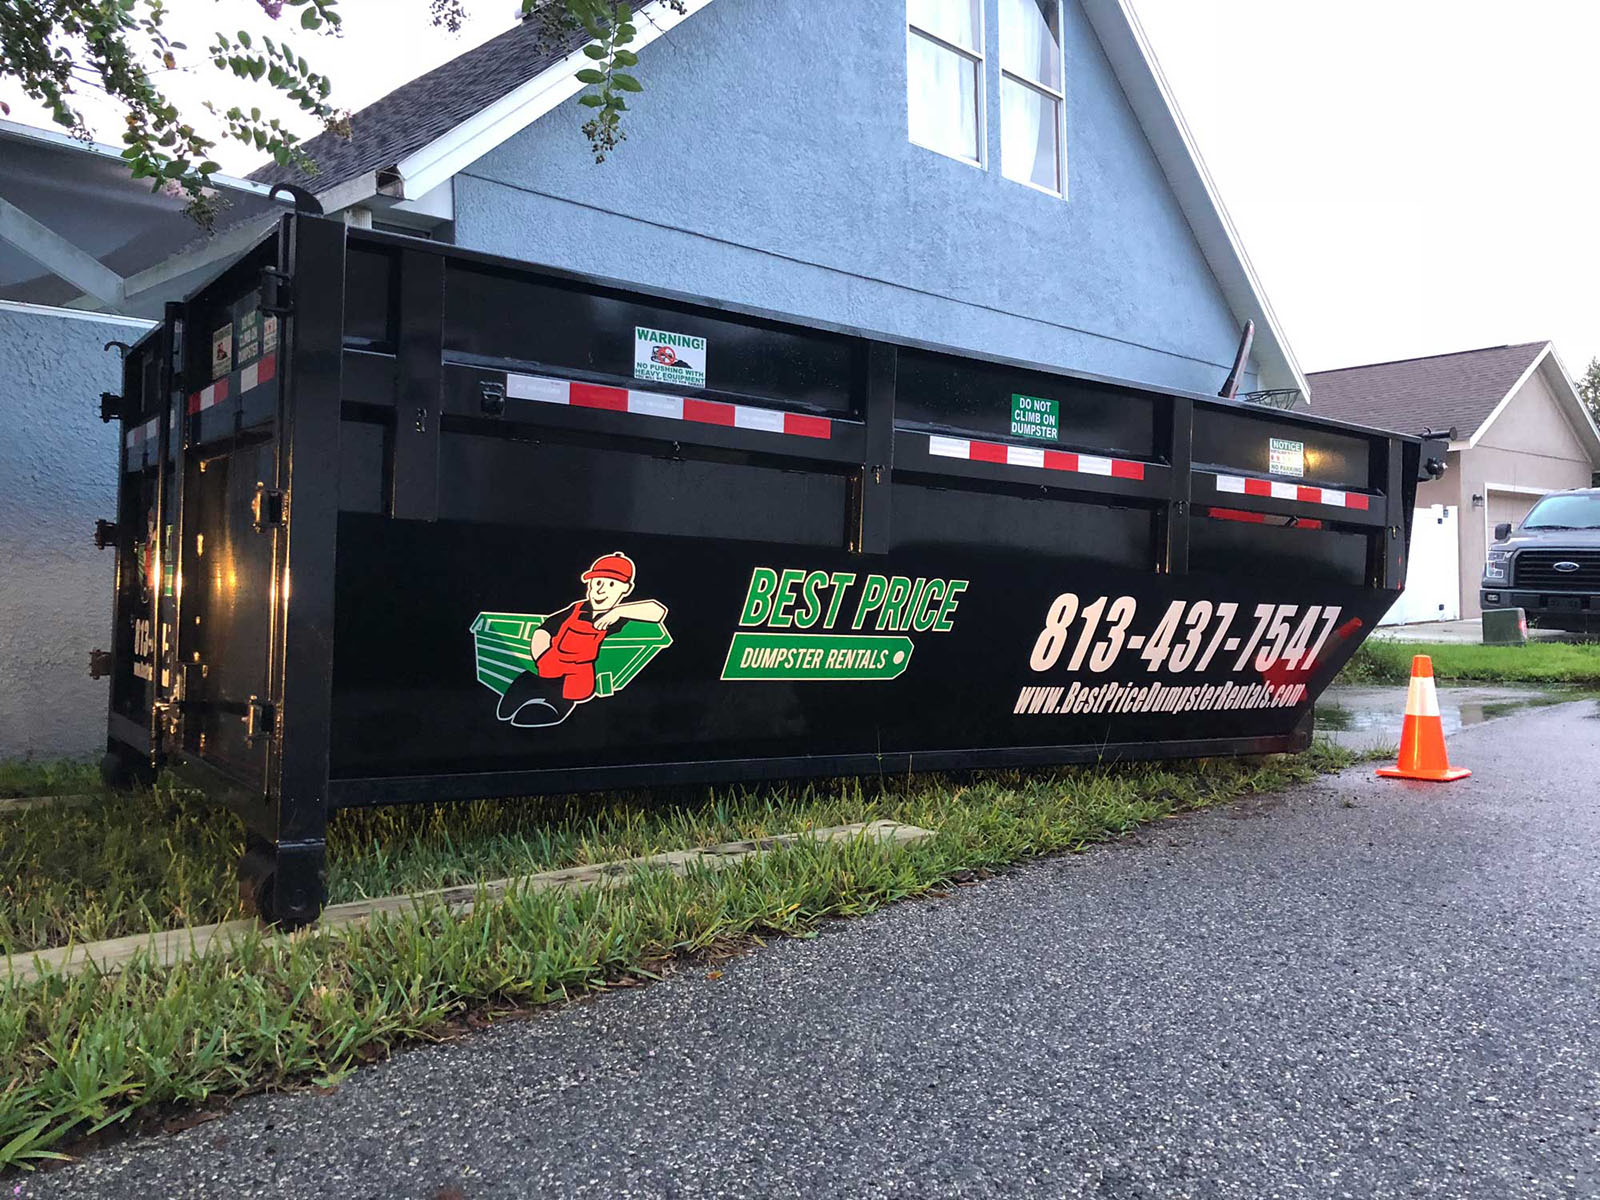 dumpster rental pasco county fl